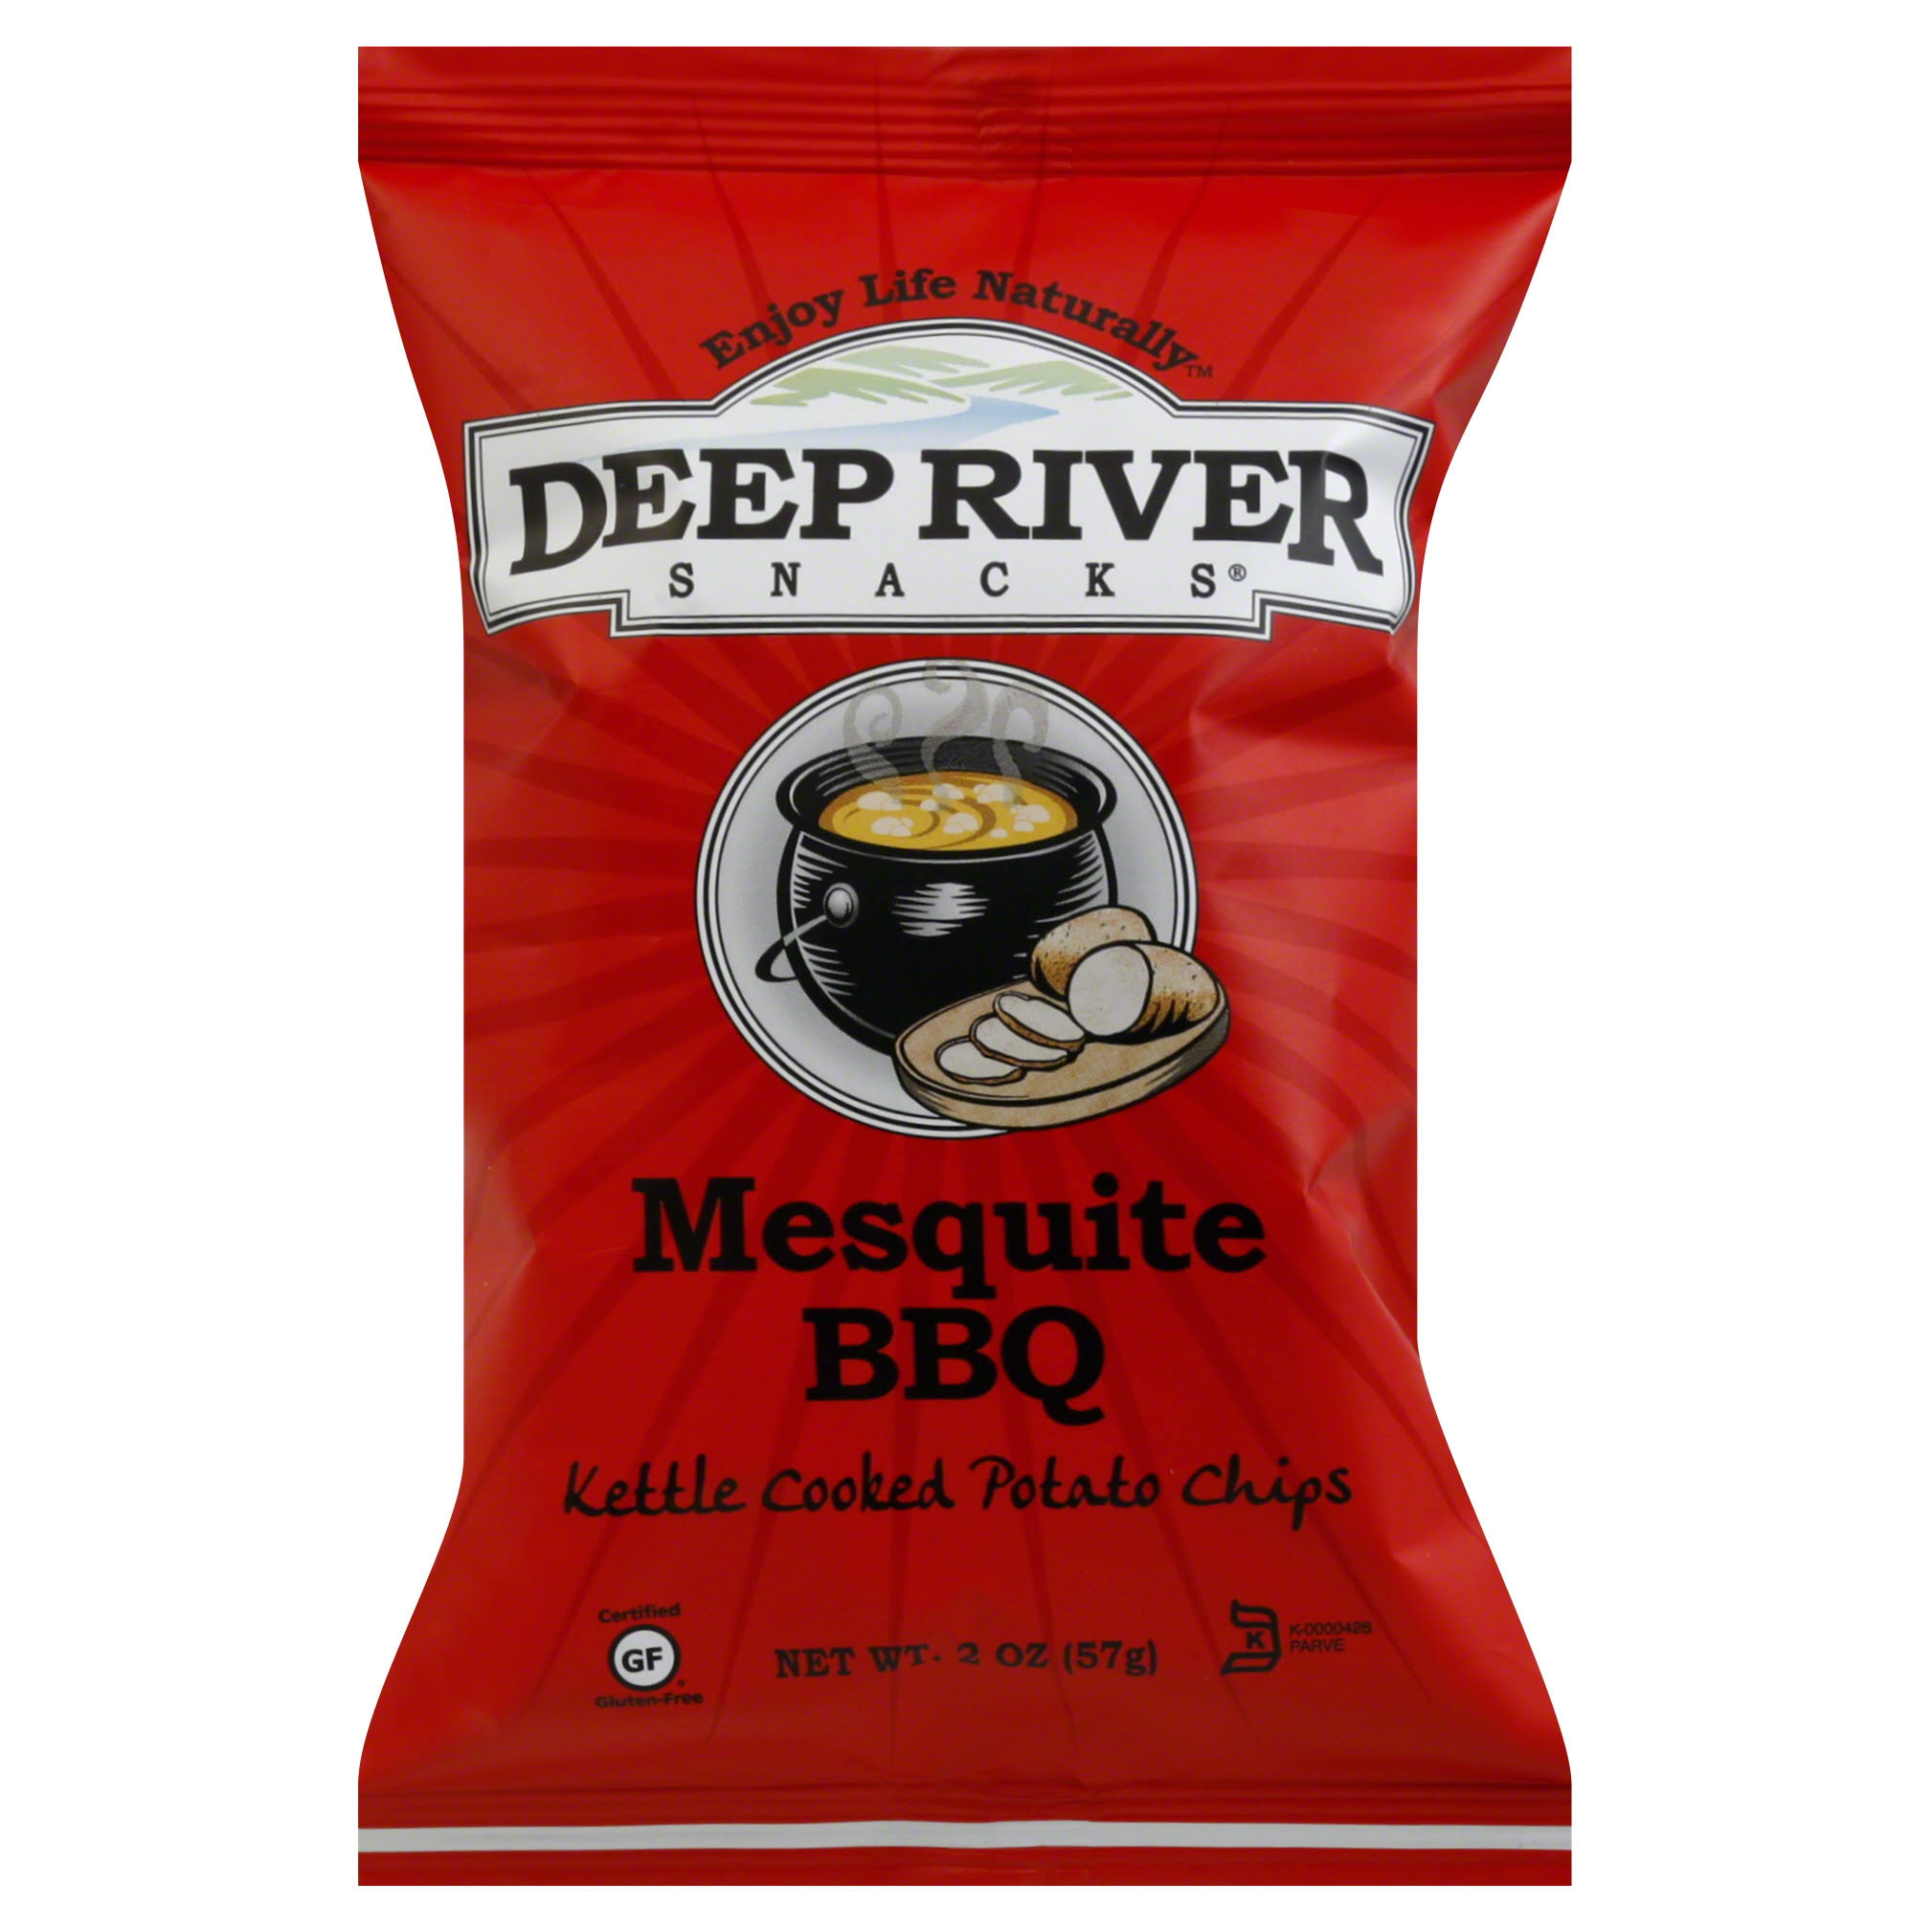 Deep River Chips Snack - Mesquite BBQ